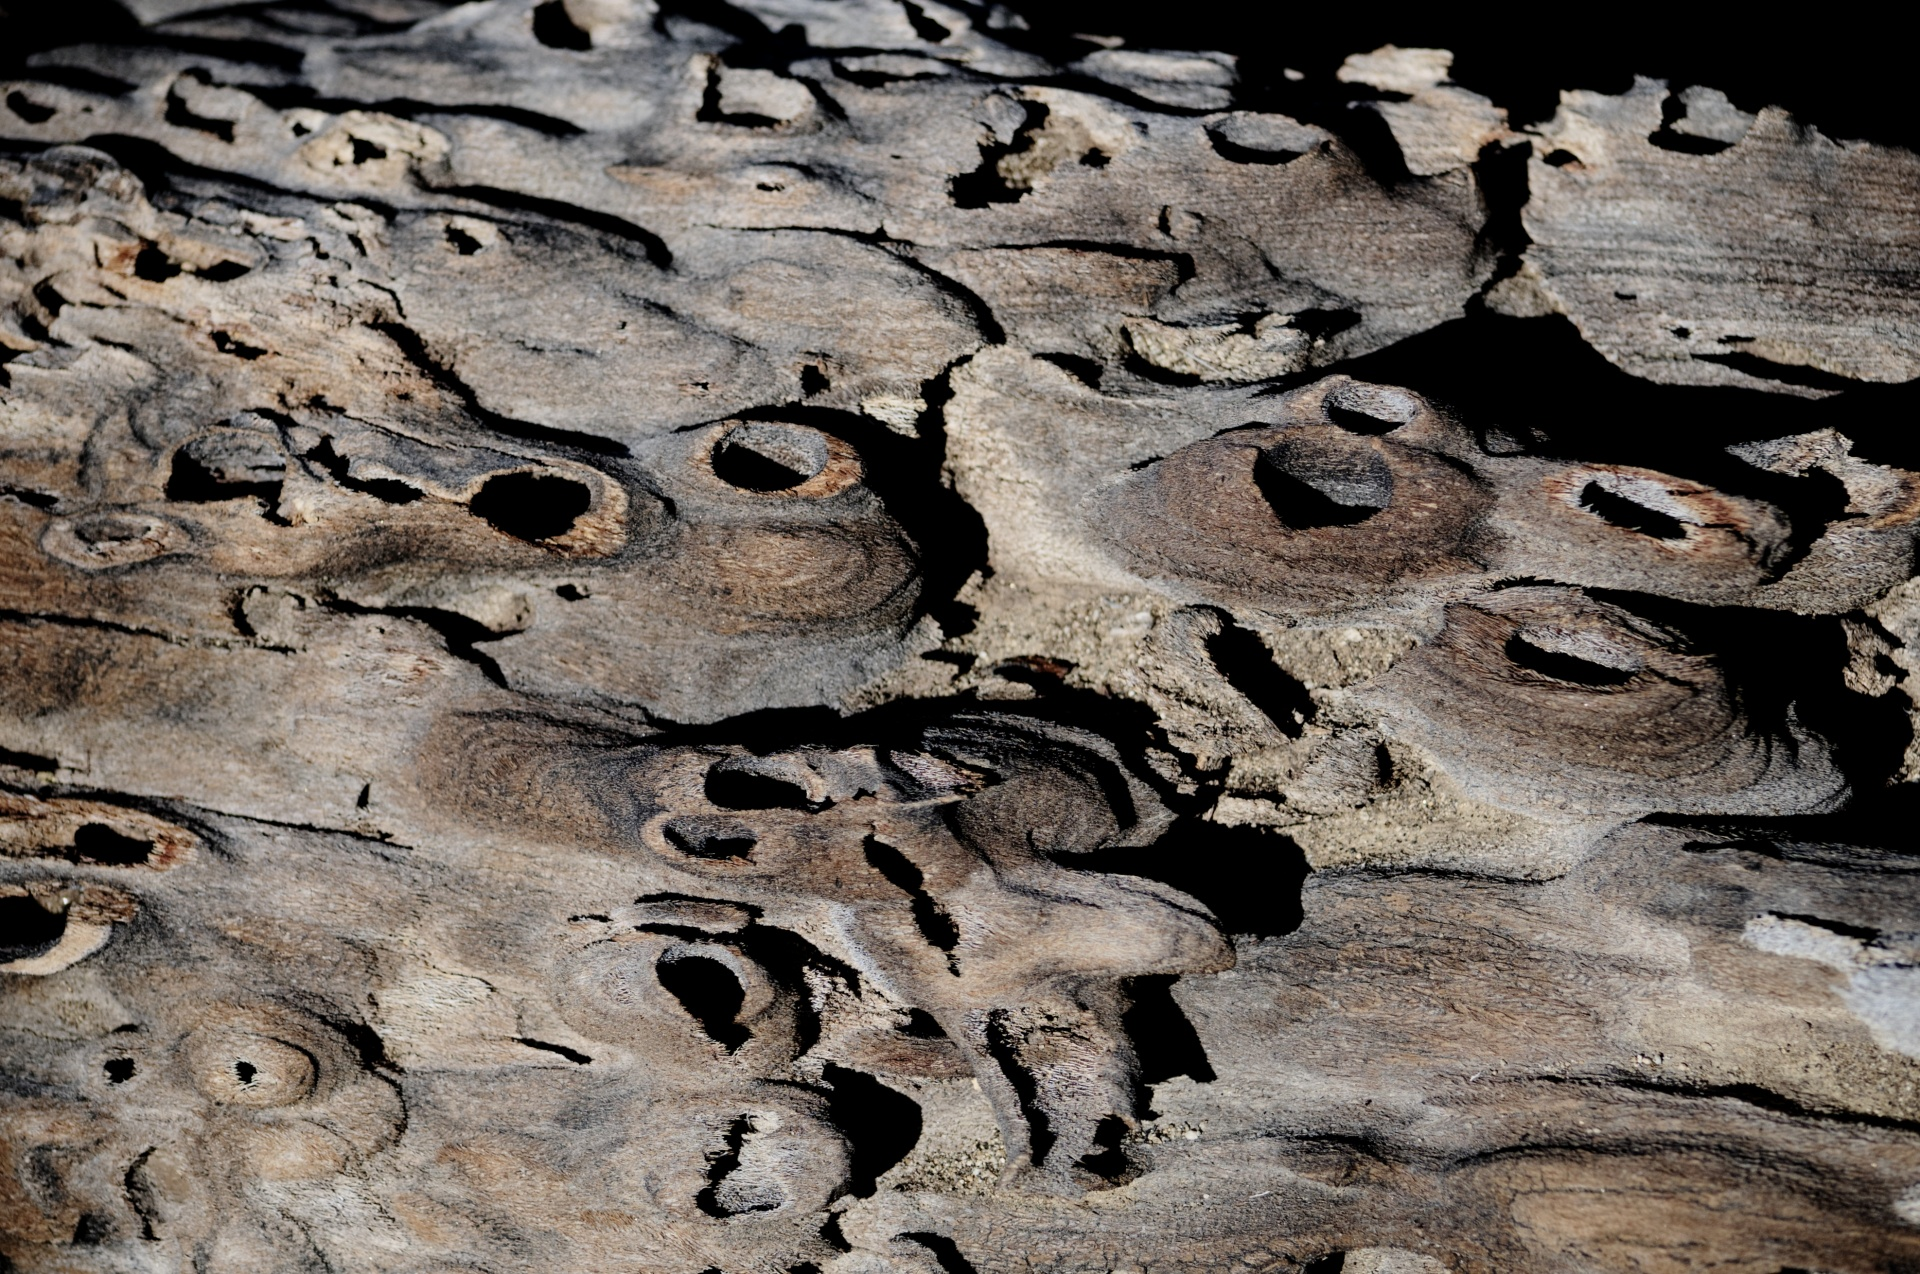 Desert Driftwood Background Free Stock Photo - Public Domain Pictures